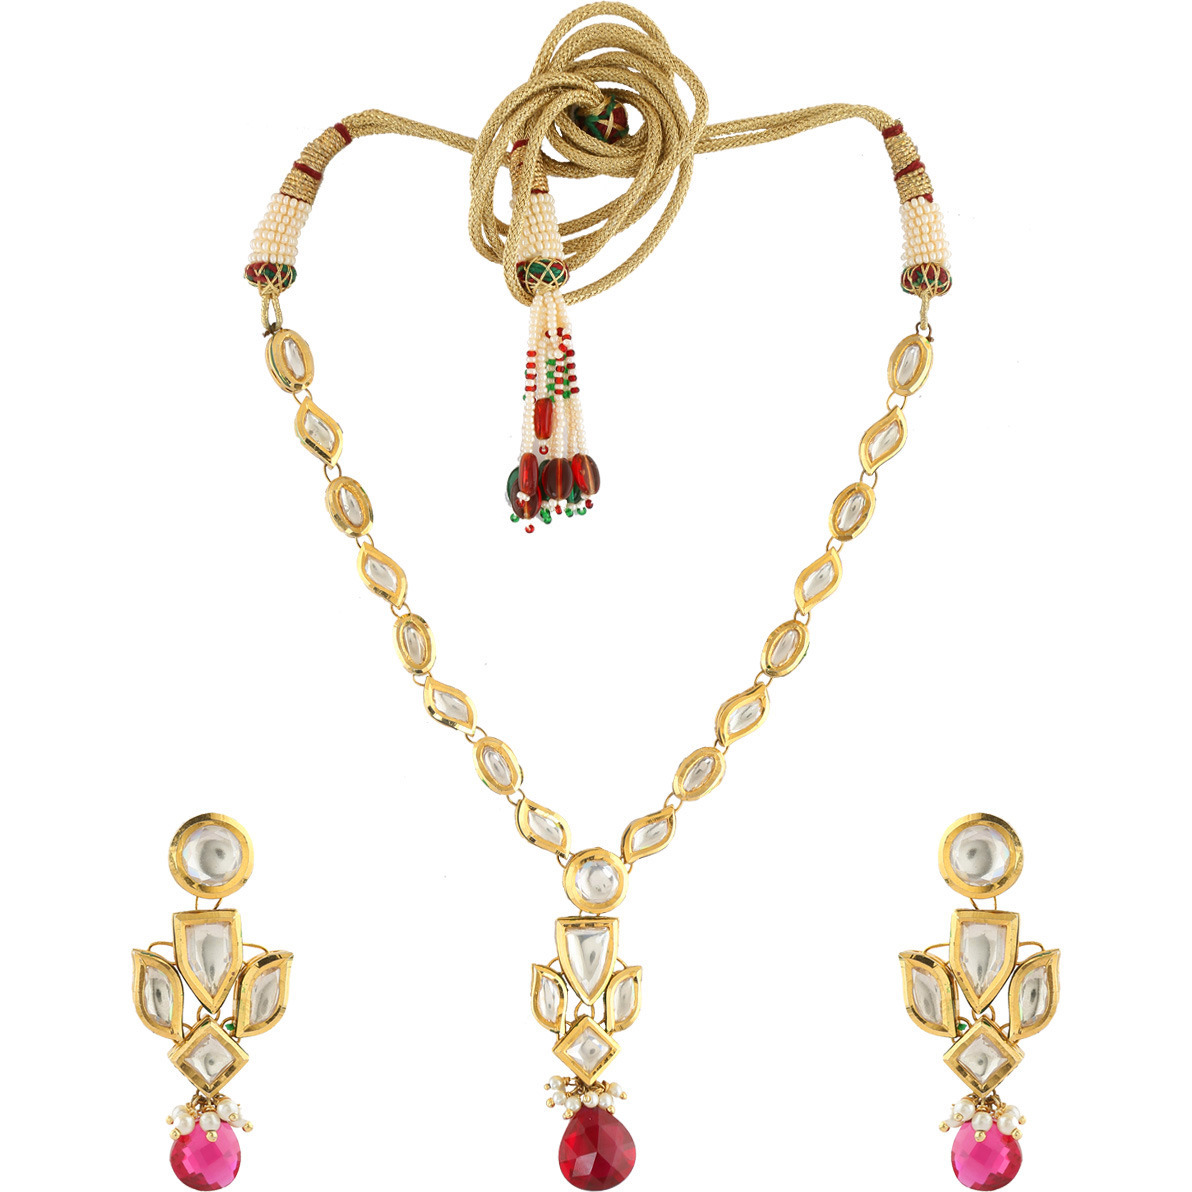 18014adaa Buy Online Anuradha Art Golden Finish Styled With Kundan Classy Wonderful Designer  Jewellery Set For Women Girls from USA - Zifiti.com - Page